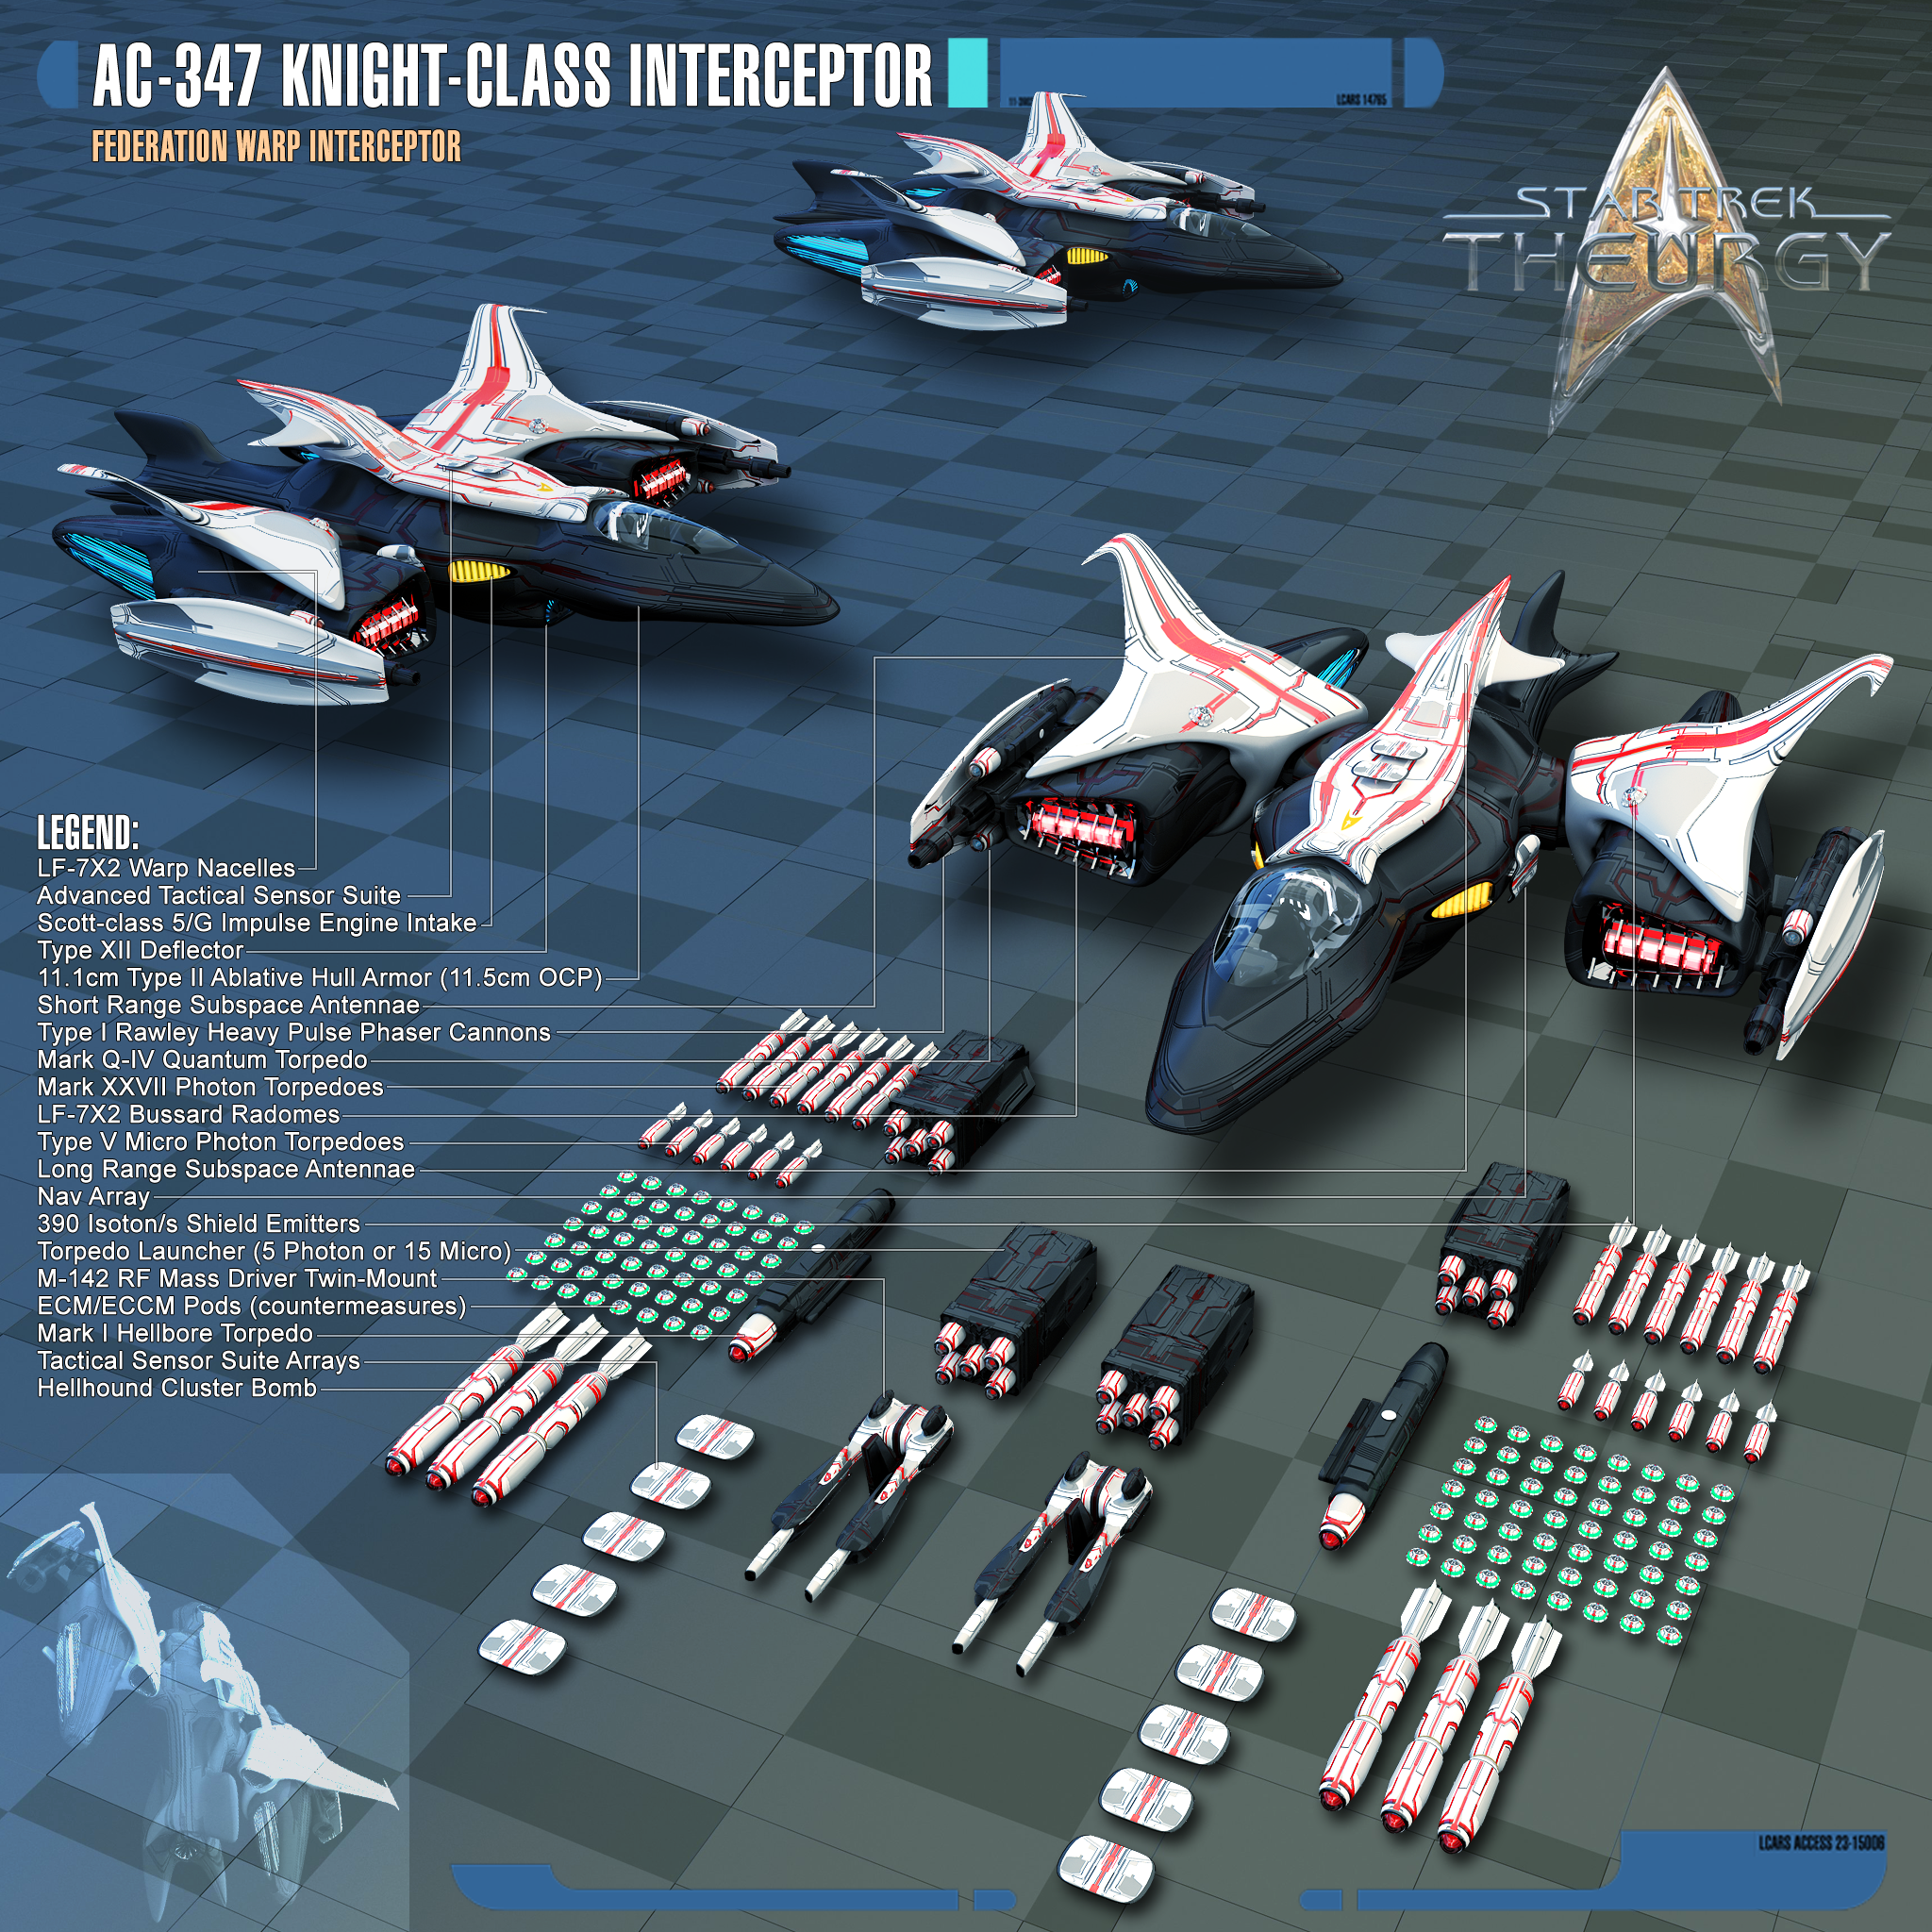 These are the space fighters the U S S  Calamity had in Star Trek